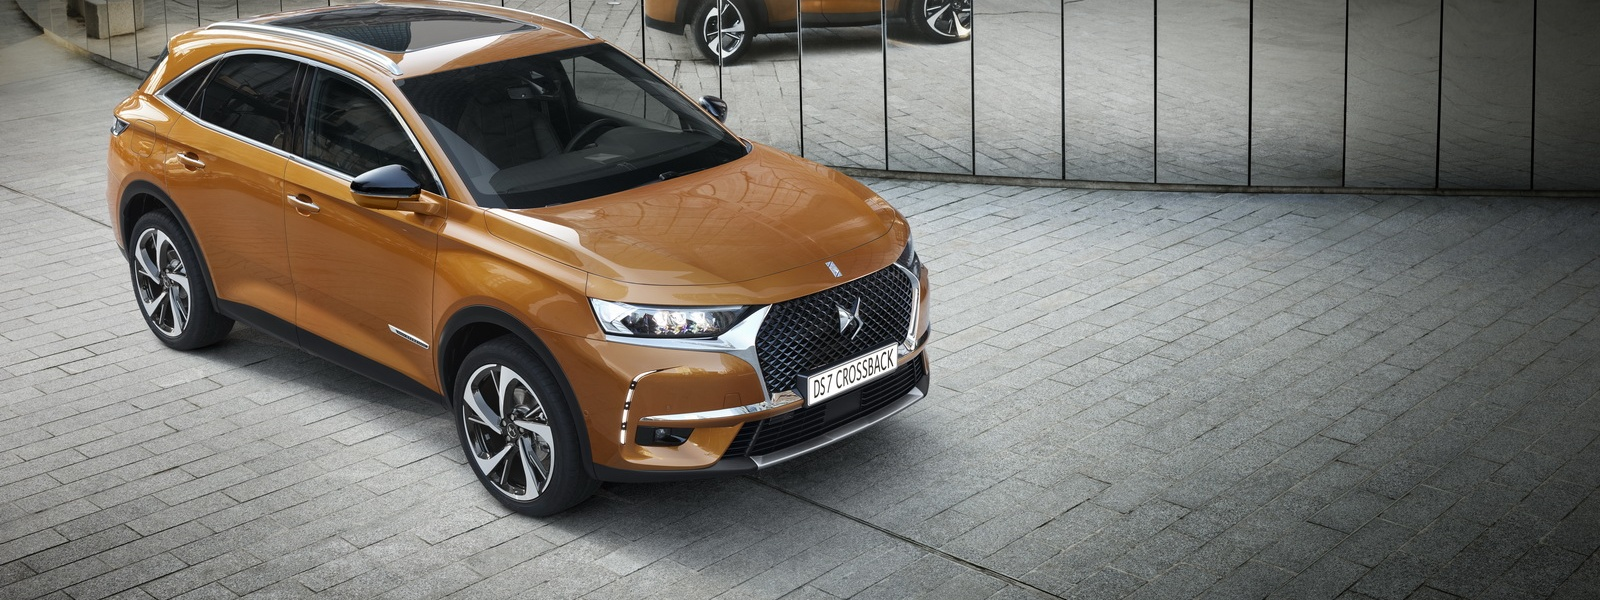 DS7-Crossback-23.jpg